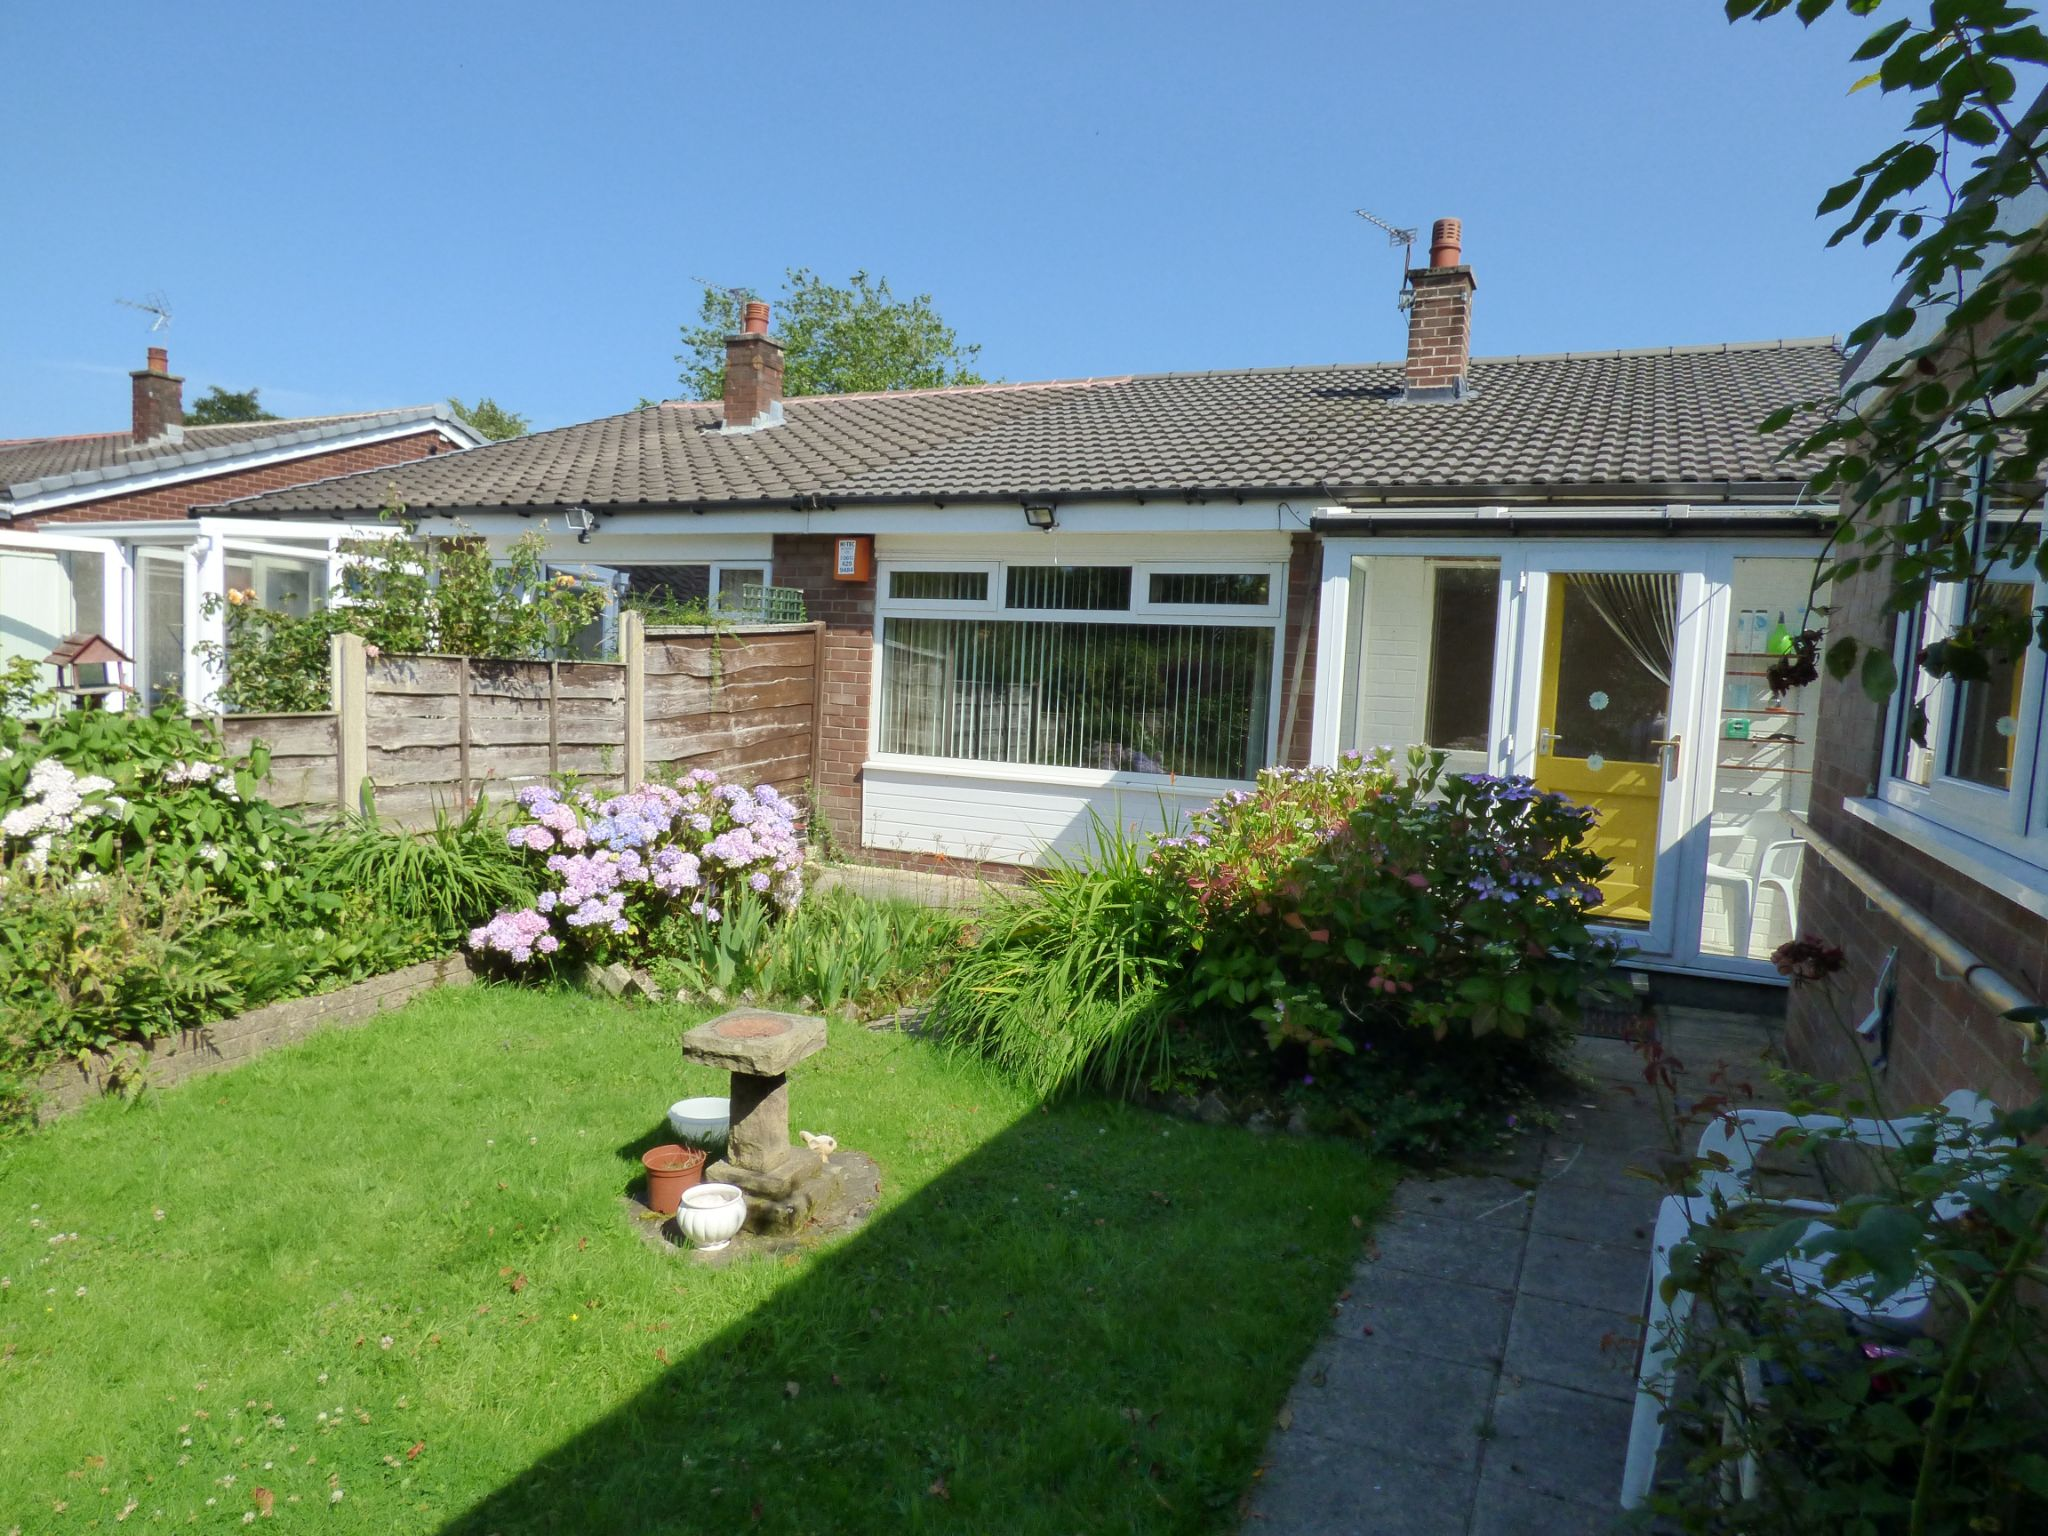 3 Bedroom Semi-detached Bungalow For Sale - Photograph 10